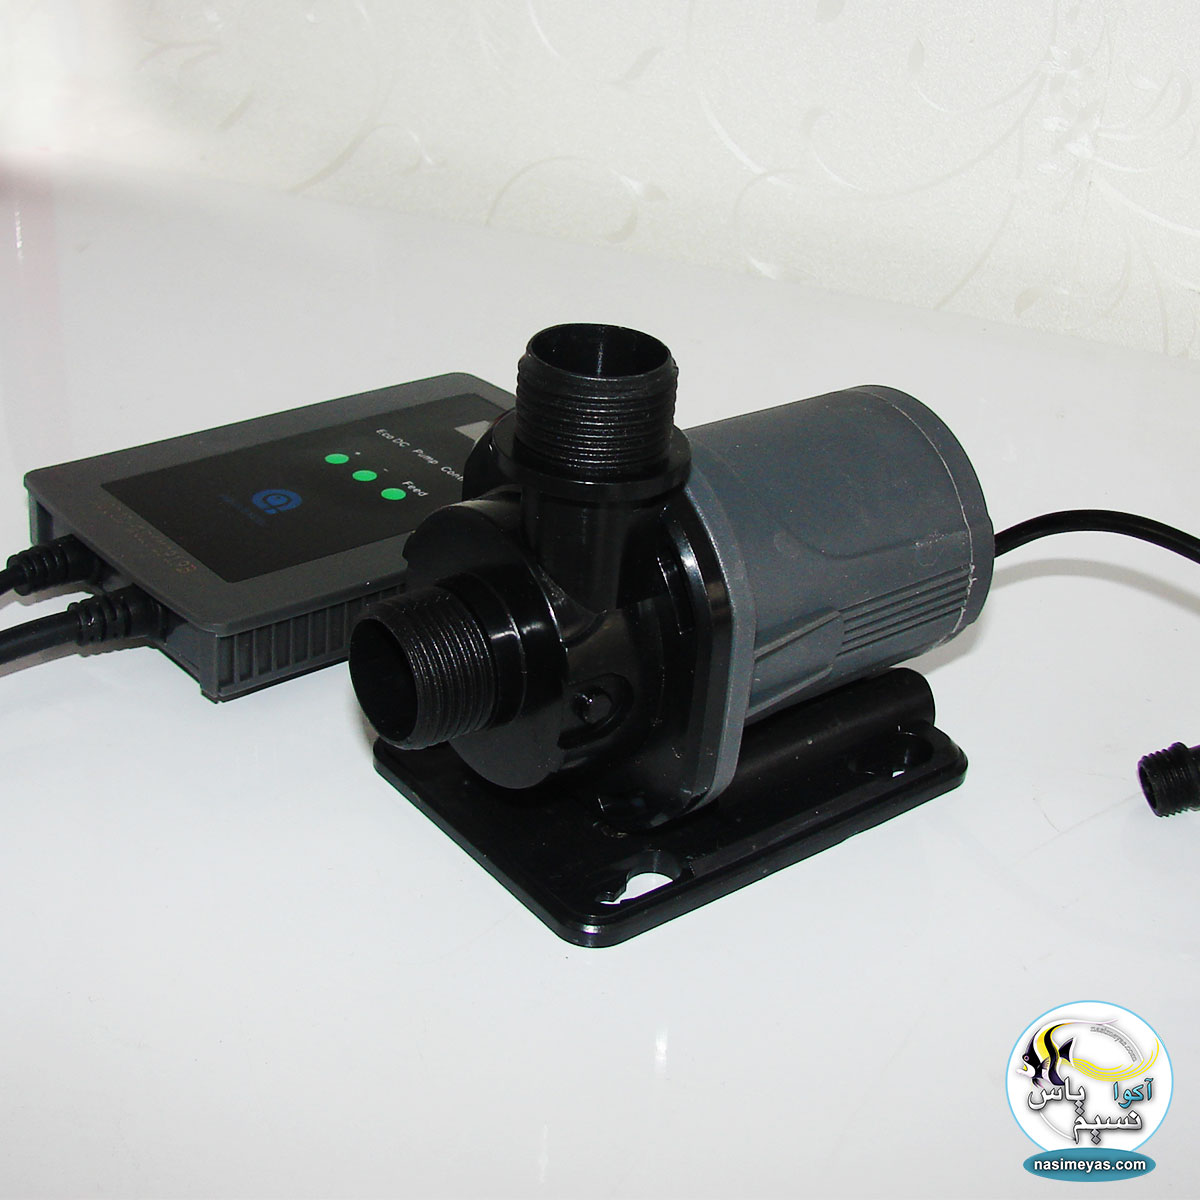 AQUA EXCEL Immersible pump DC-2000